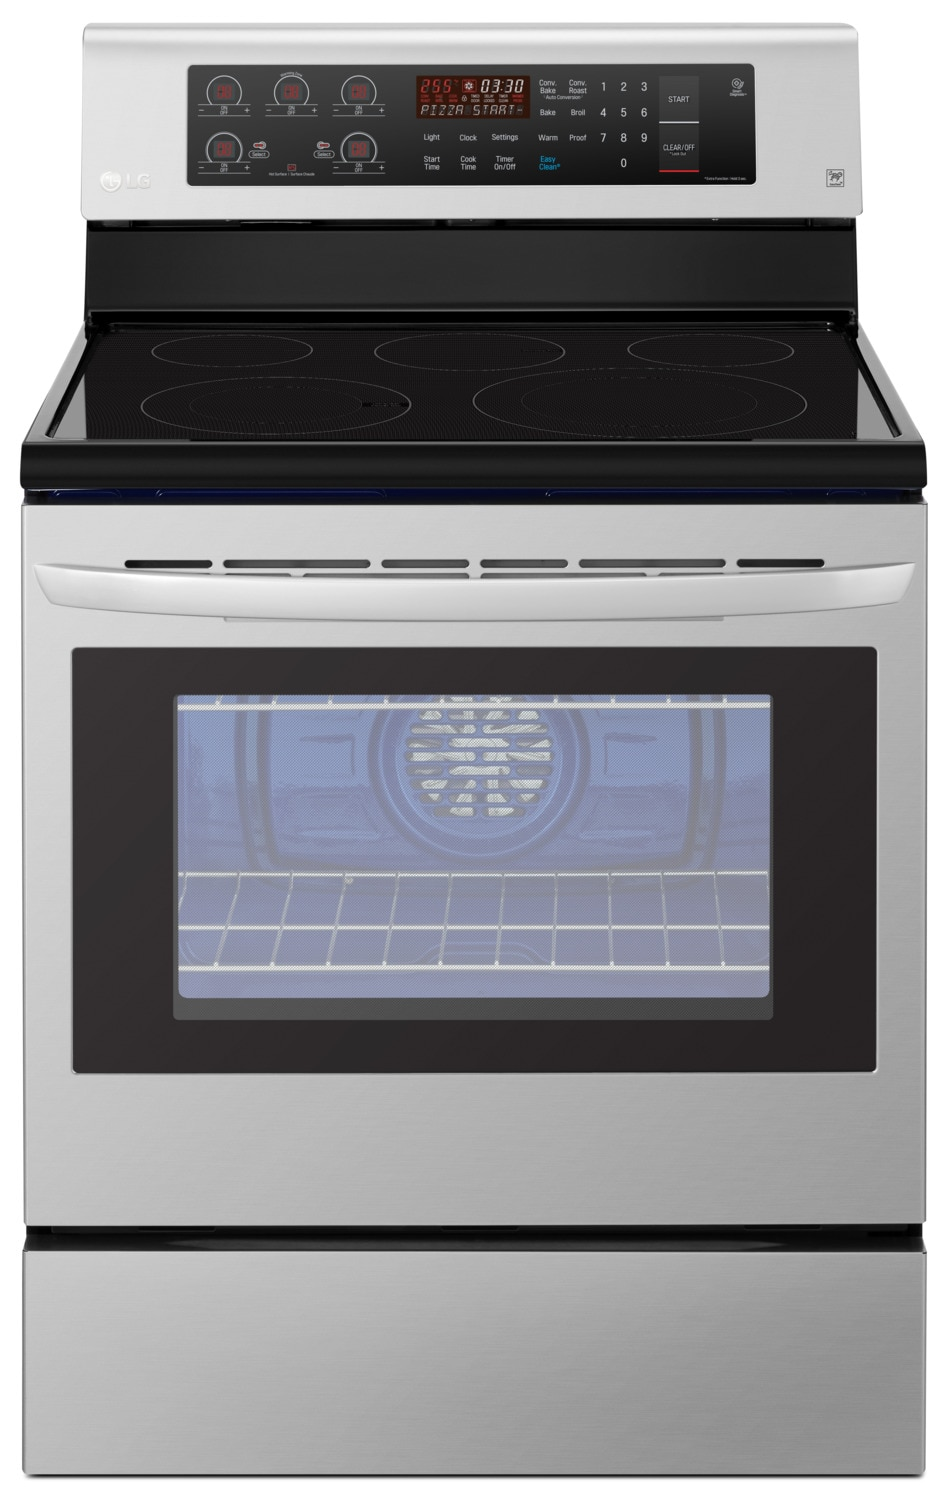 LG 6.3 Cu. Ft. Freestanding Convection Electric Range – LRE3193ST